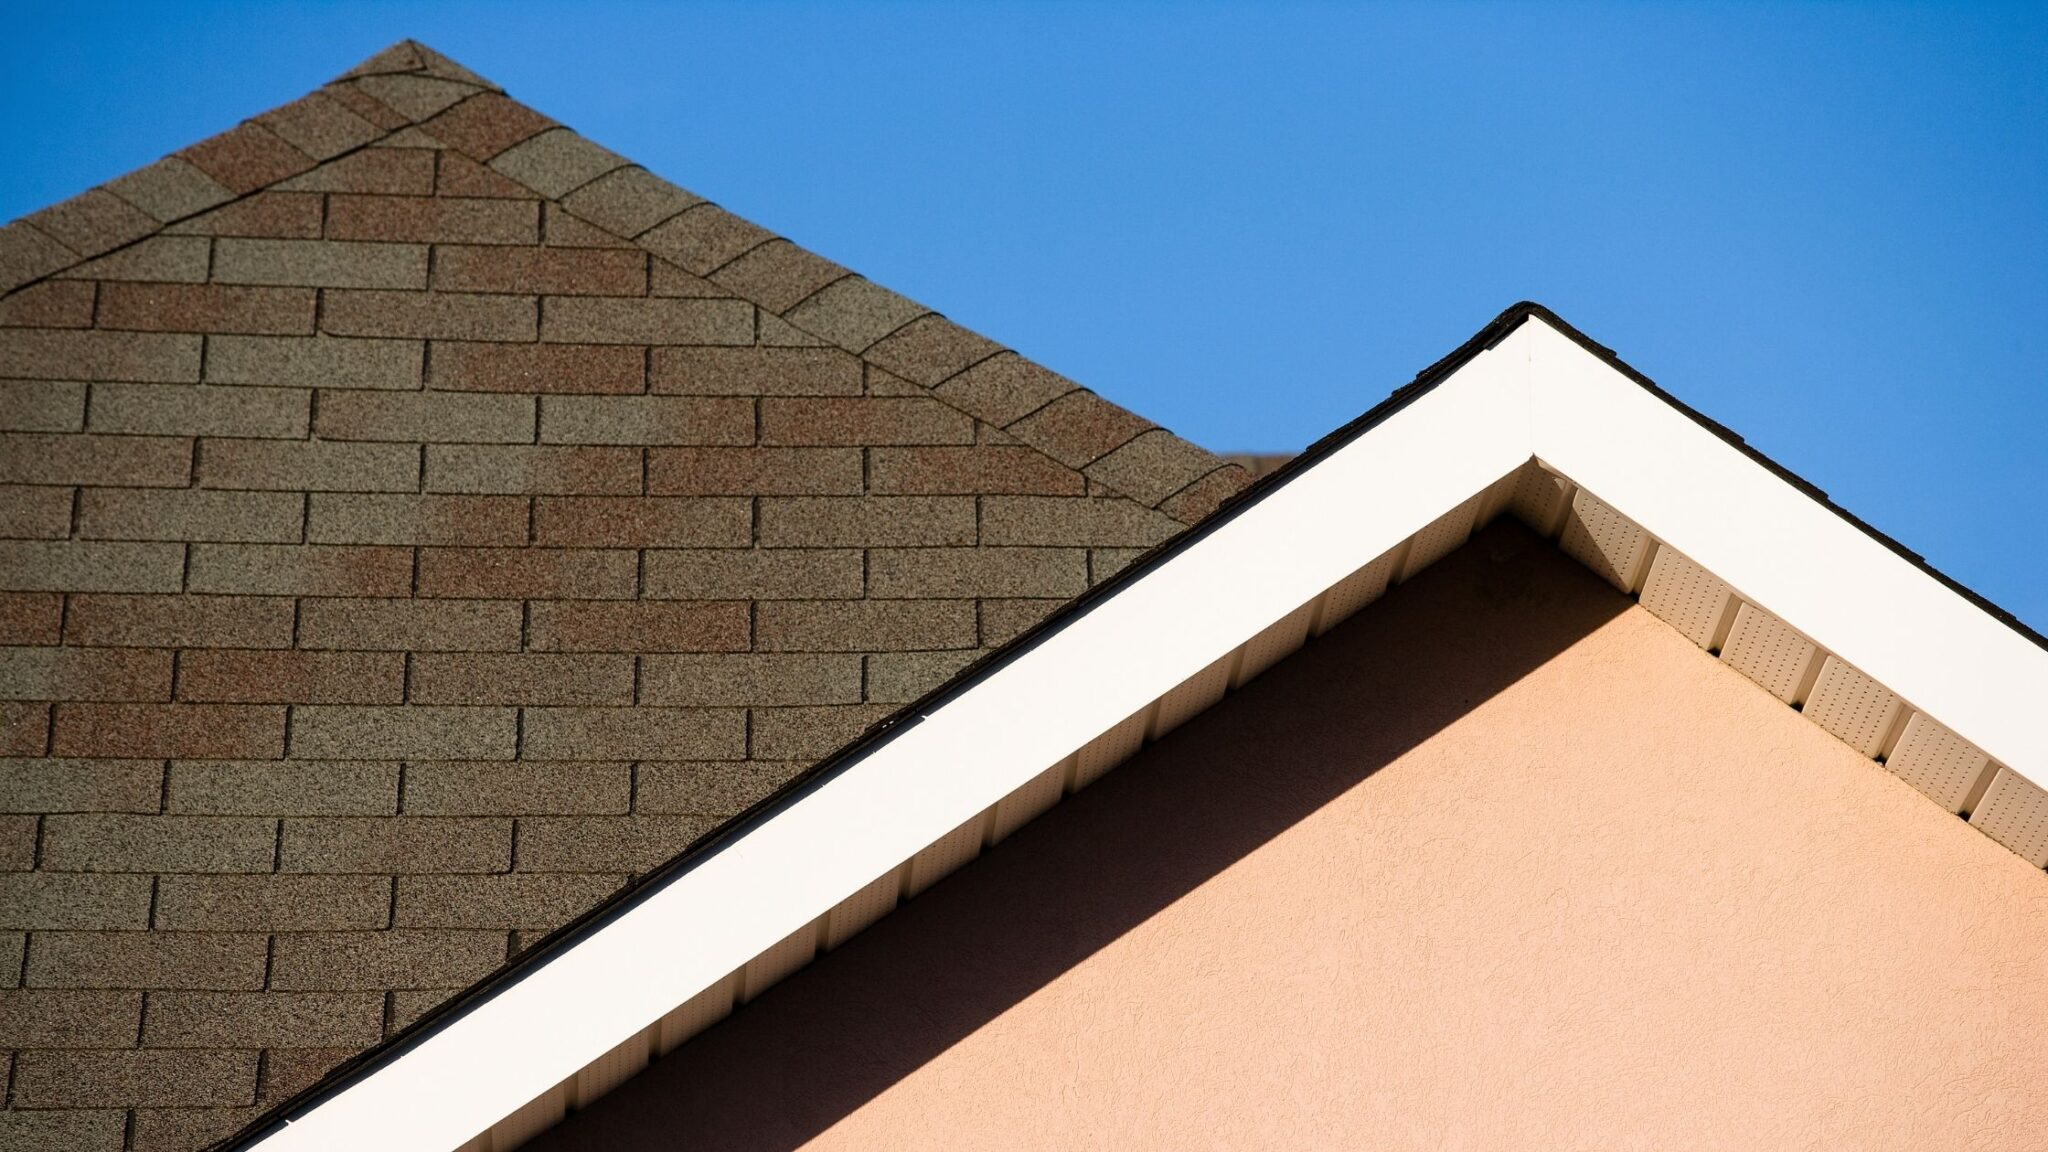 3 Reasons Why You Should Get Your Roof Inspected By a Local Roofing Contractor